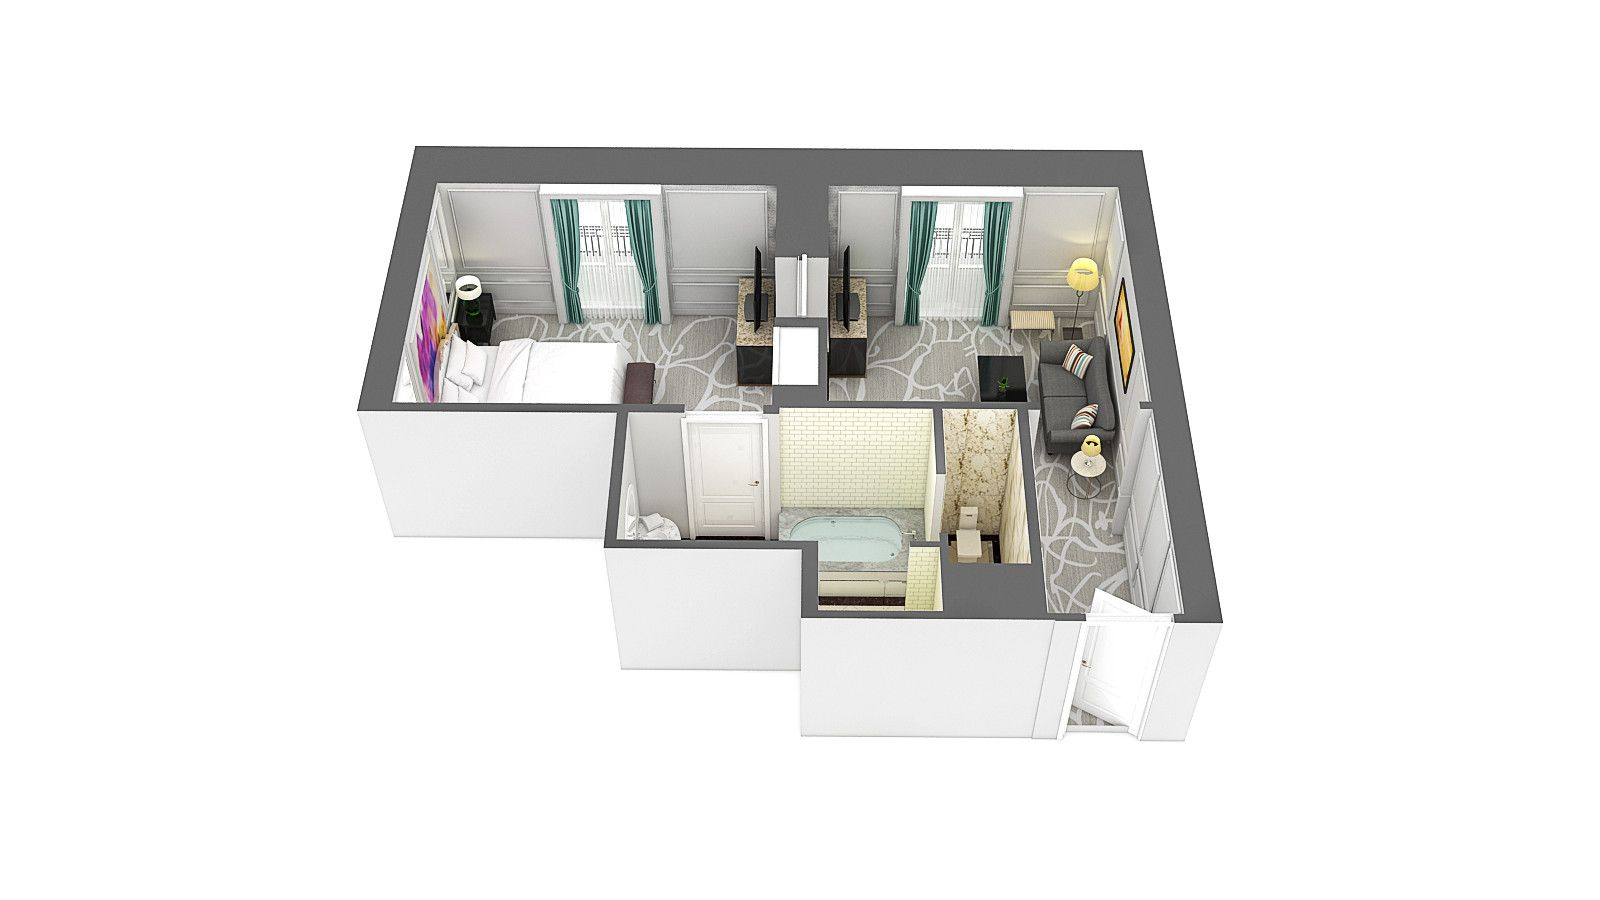 3d floor plan of the junior suite at Hotel Maria Cristina